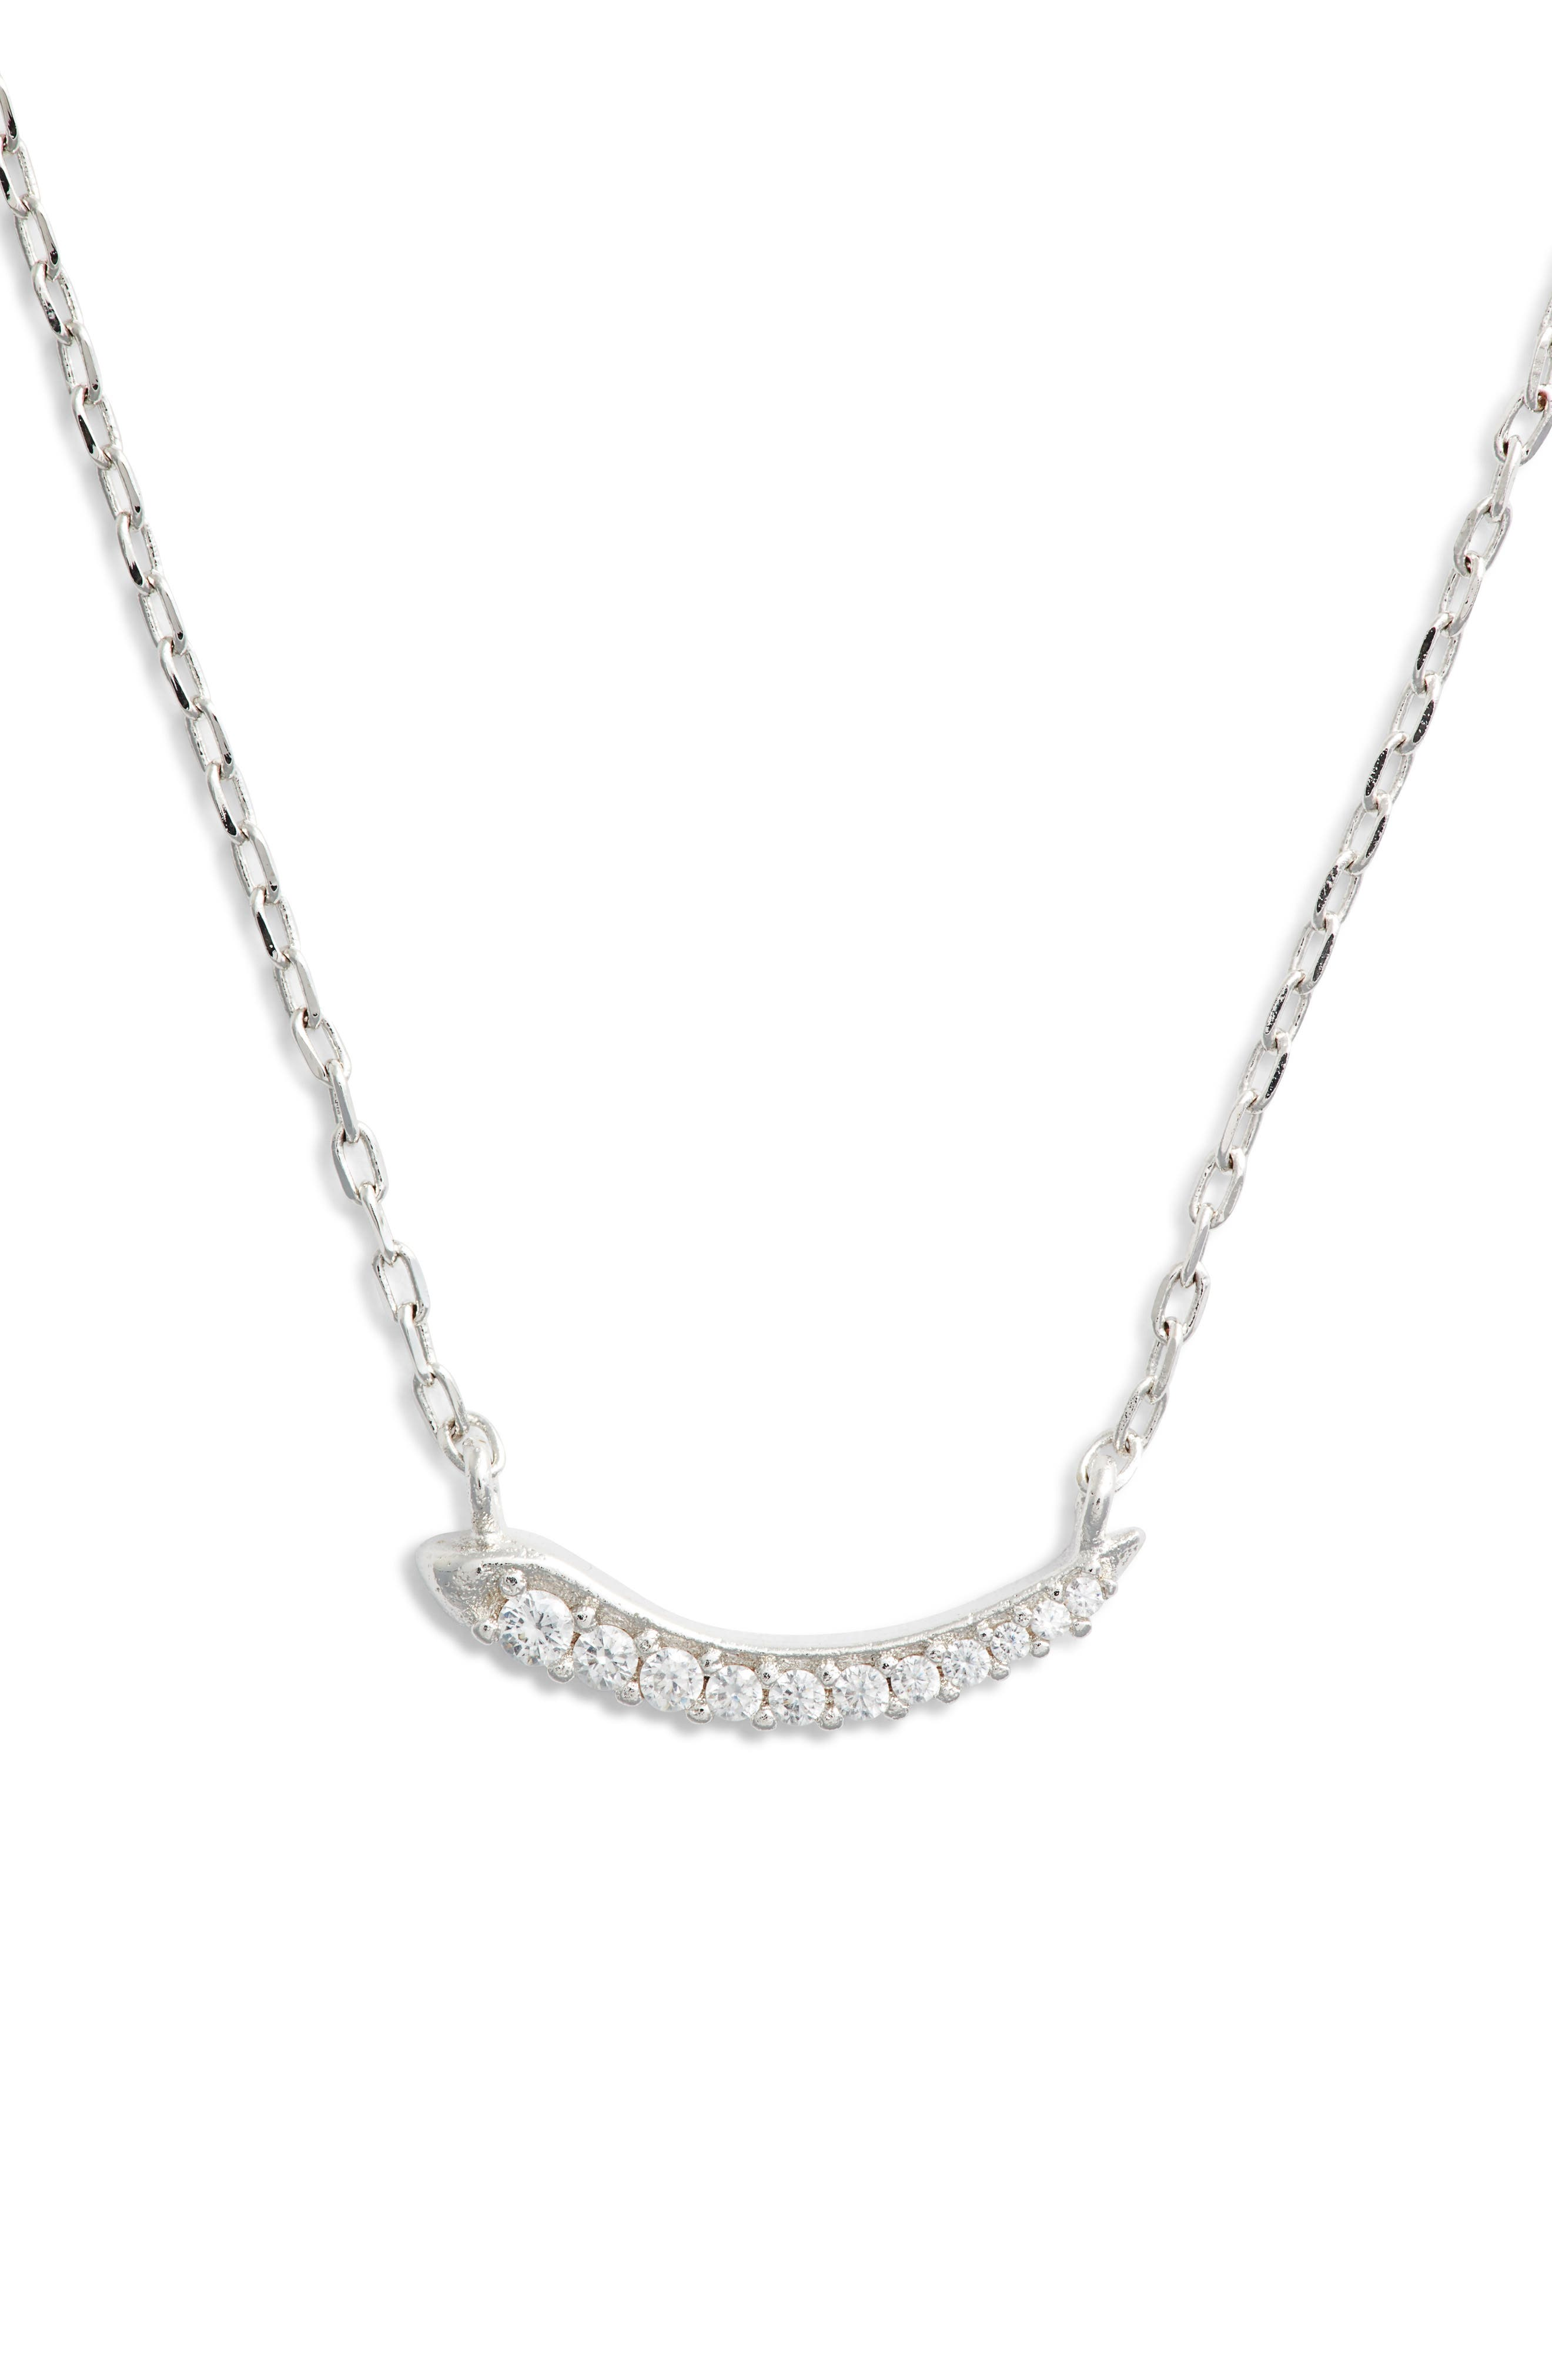 Whitlee Pendant Necklace,                             Main thumbnail 2, color,